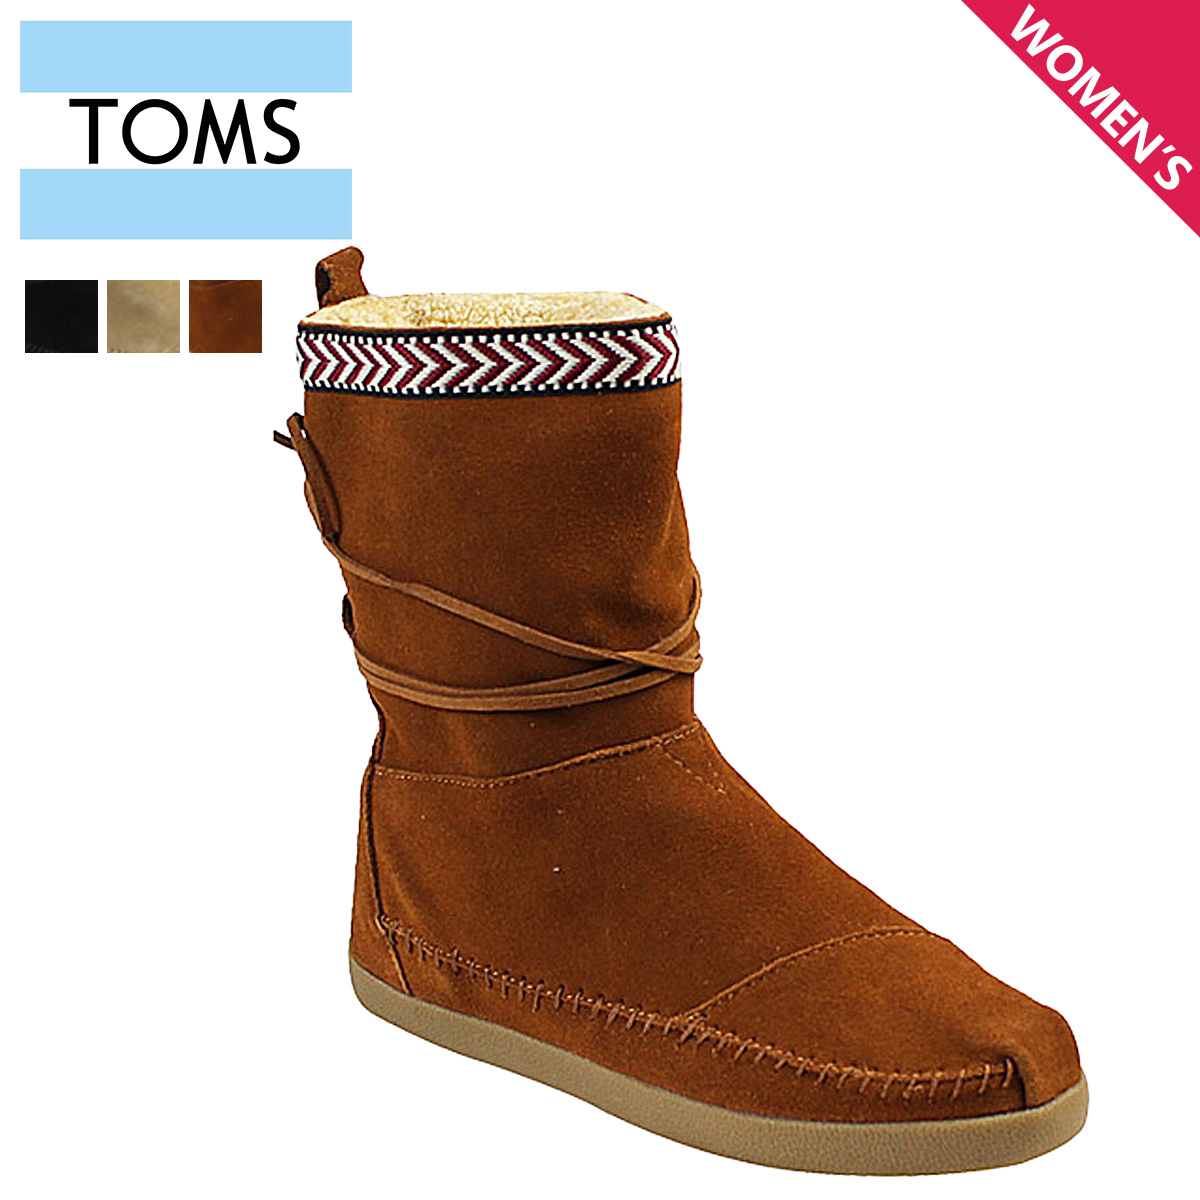 824612193ed TOMS SHOES Thoms shoes boots SUEDE TRIM WOMEN'S NEPAL BOOTS Tom's Thoms  shoes